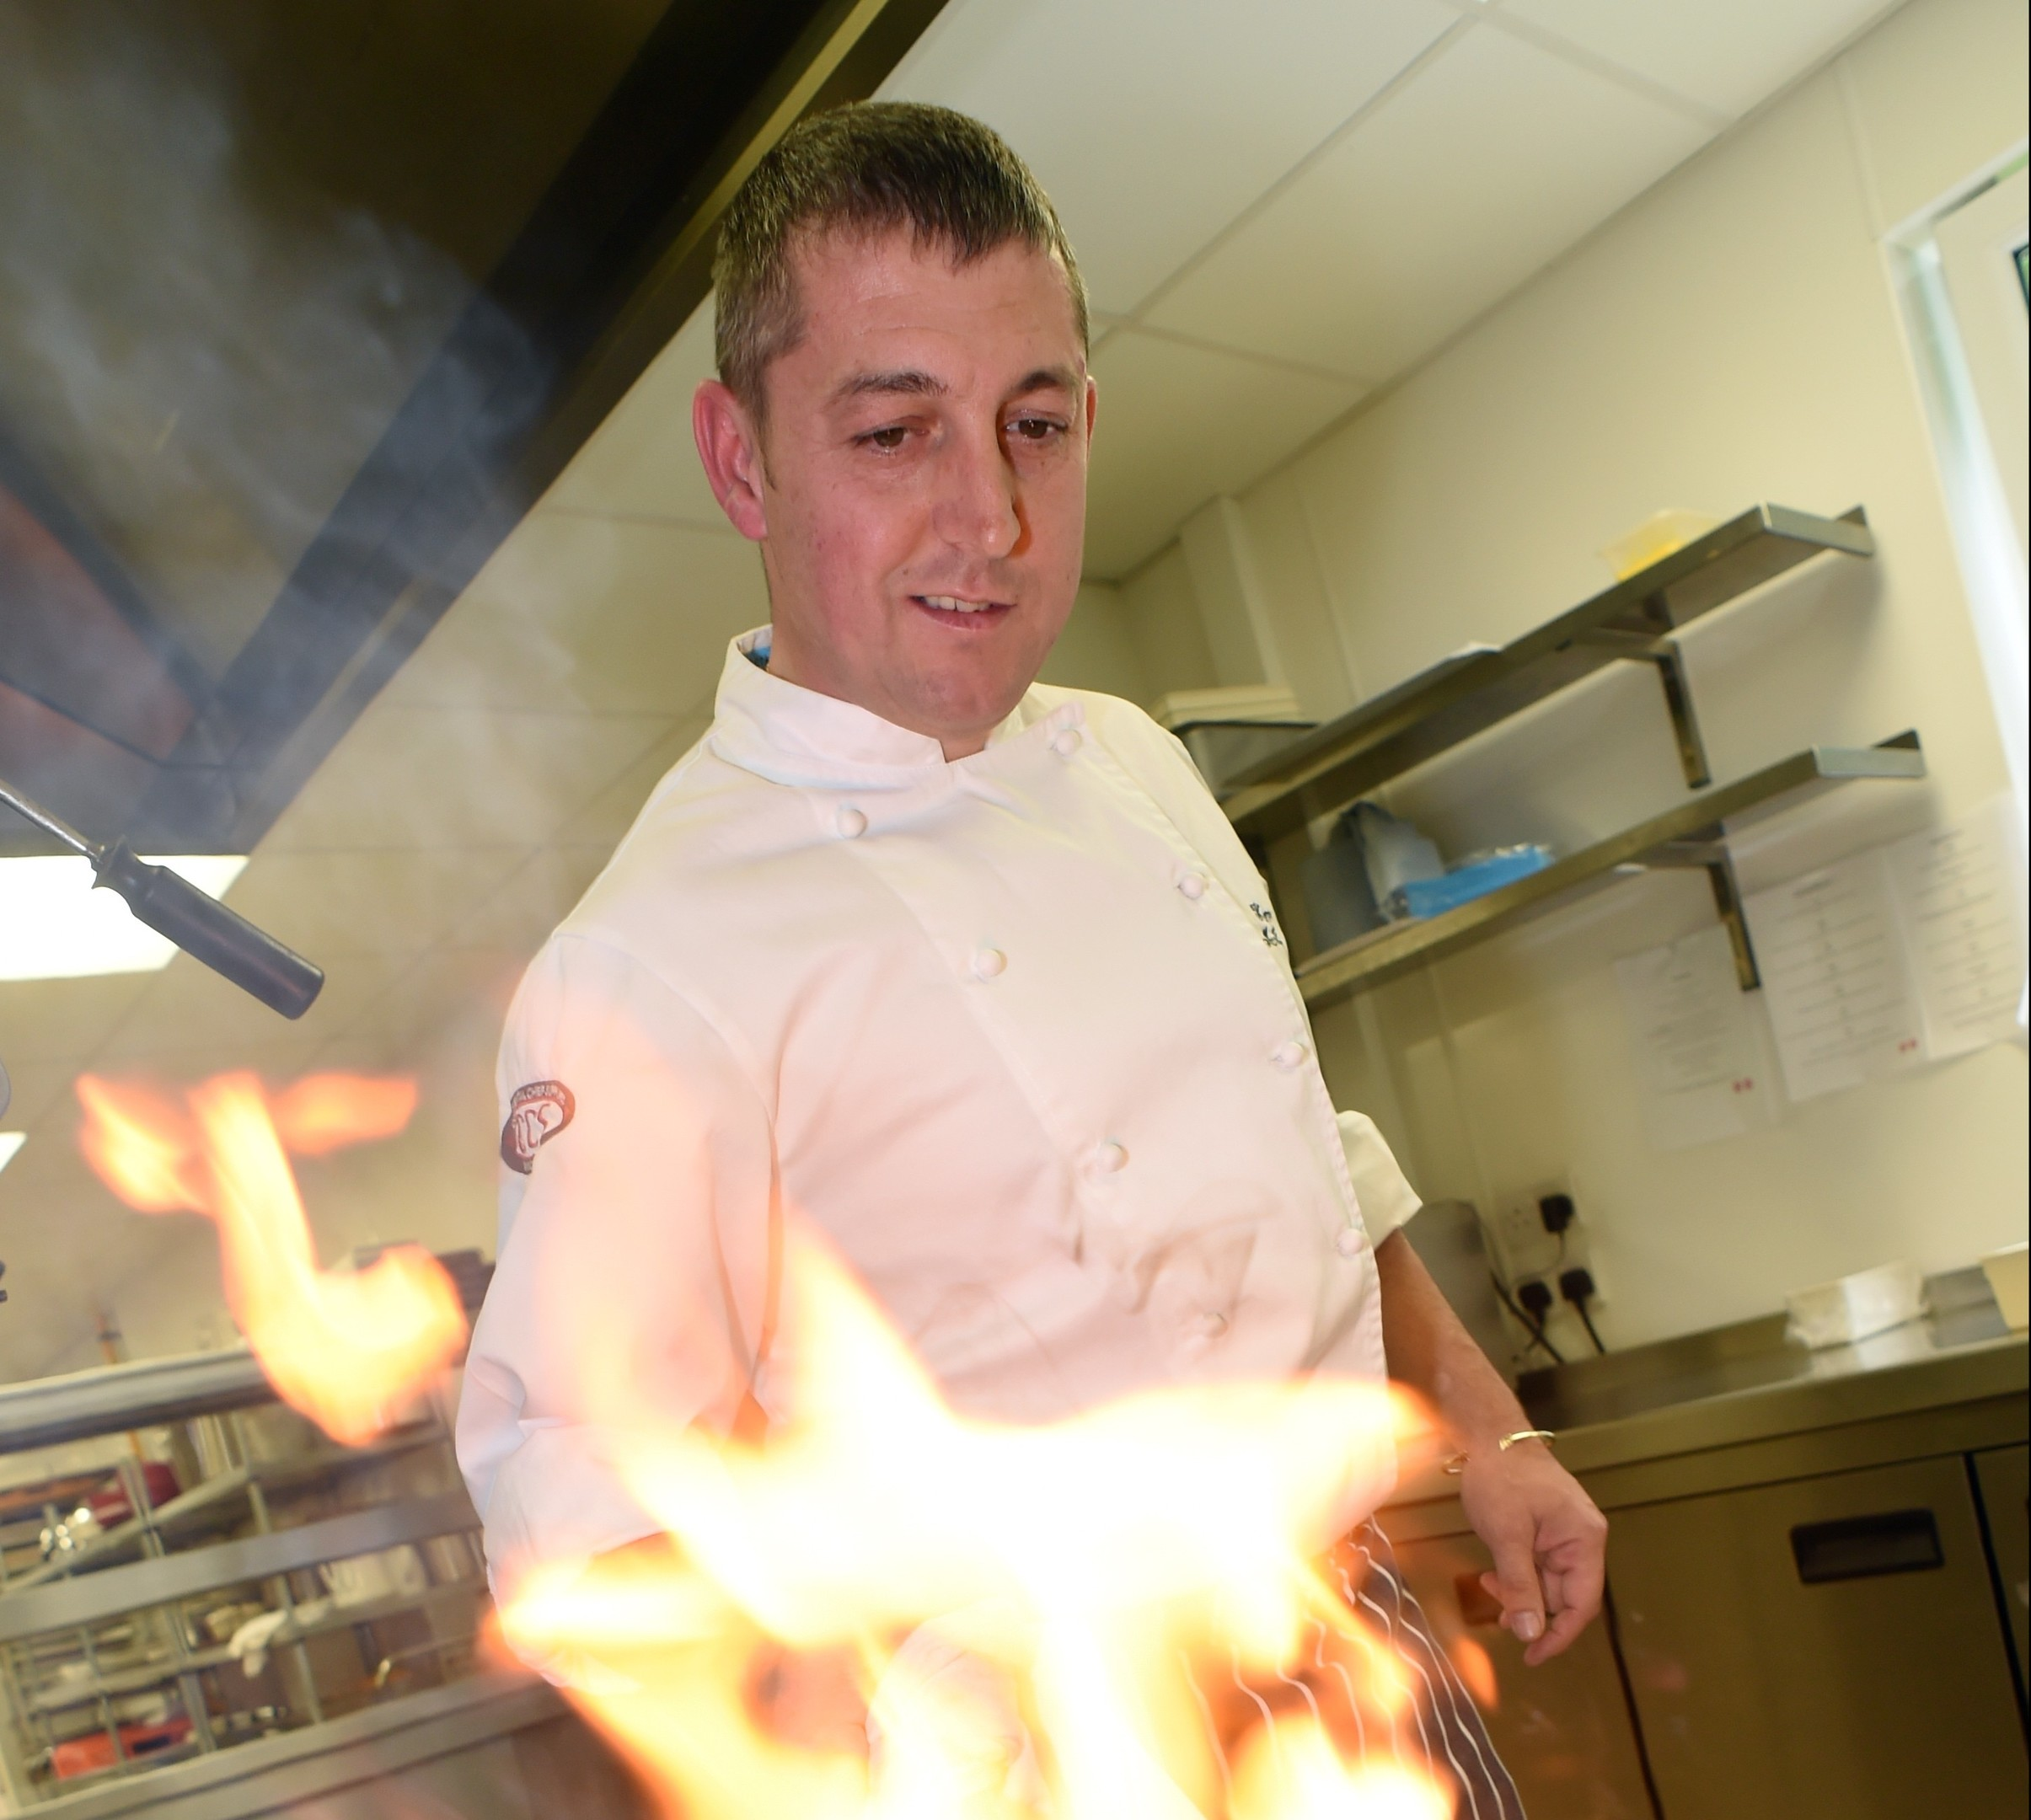 Kenny McMillan, Cluster Group Executive Chef with MacDonald Hotels, pictured at Norwood Hall Hotel, Aberdeen.